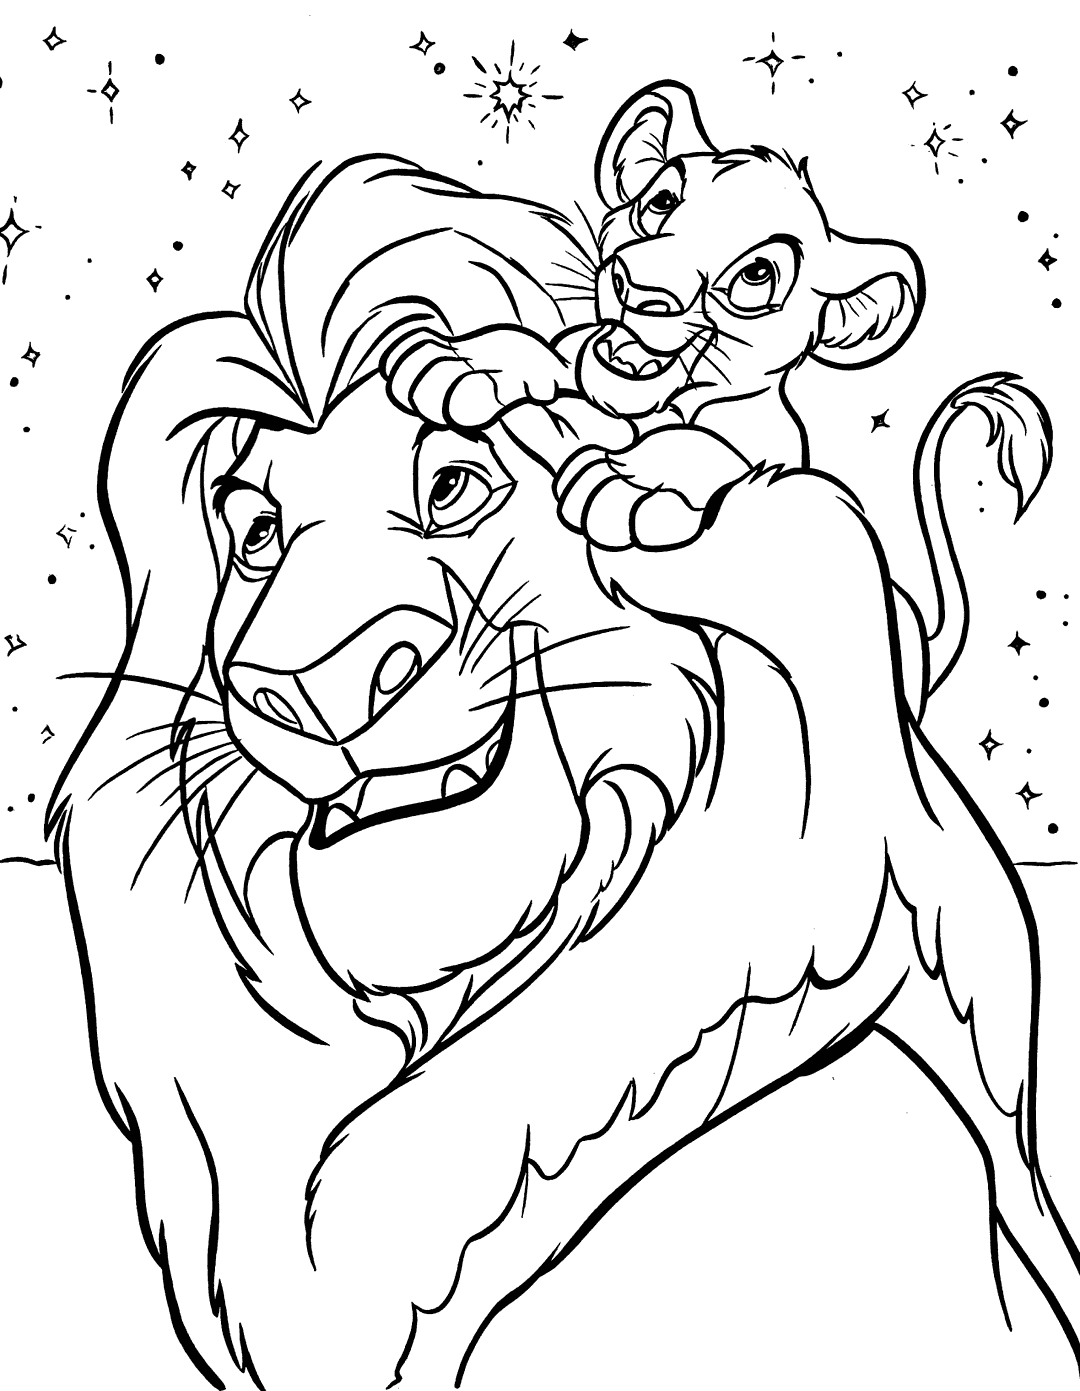 Simba and Mufasa Coloring Page